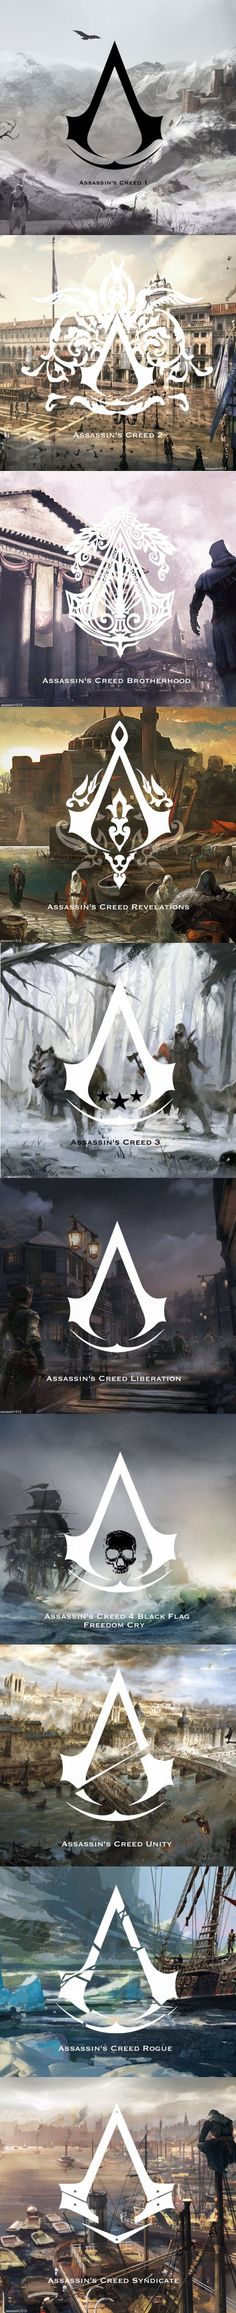 97 Best Assassins Creed Logo Images Assassins Creed Creed Assassin